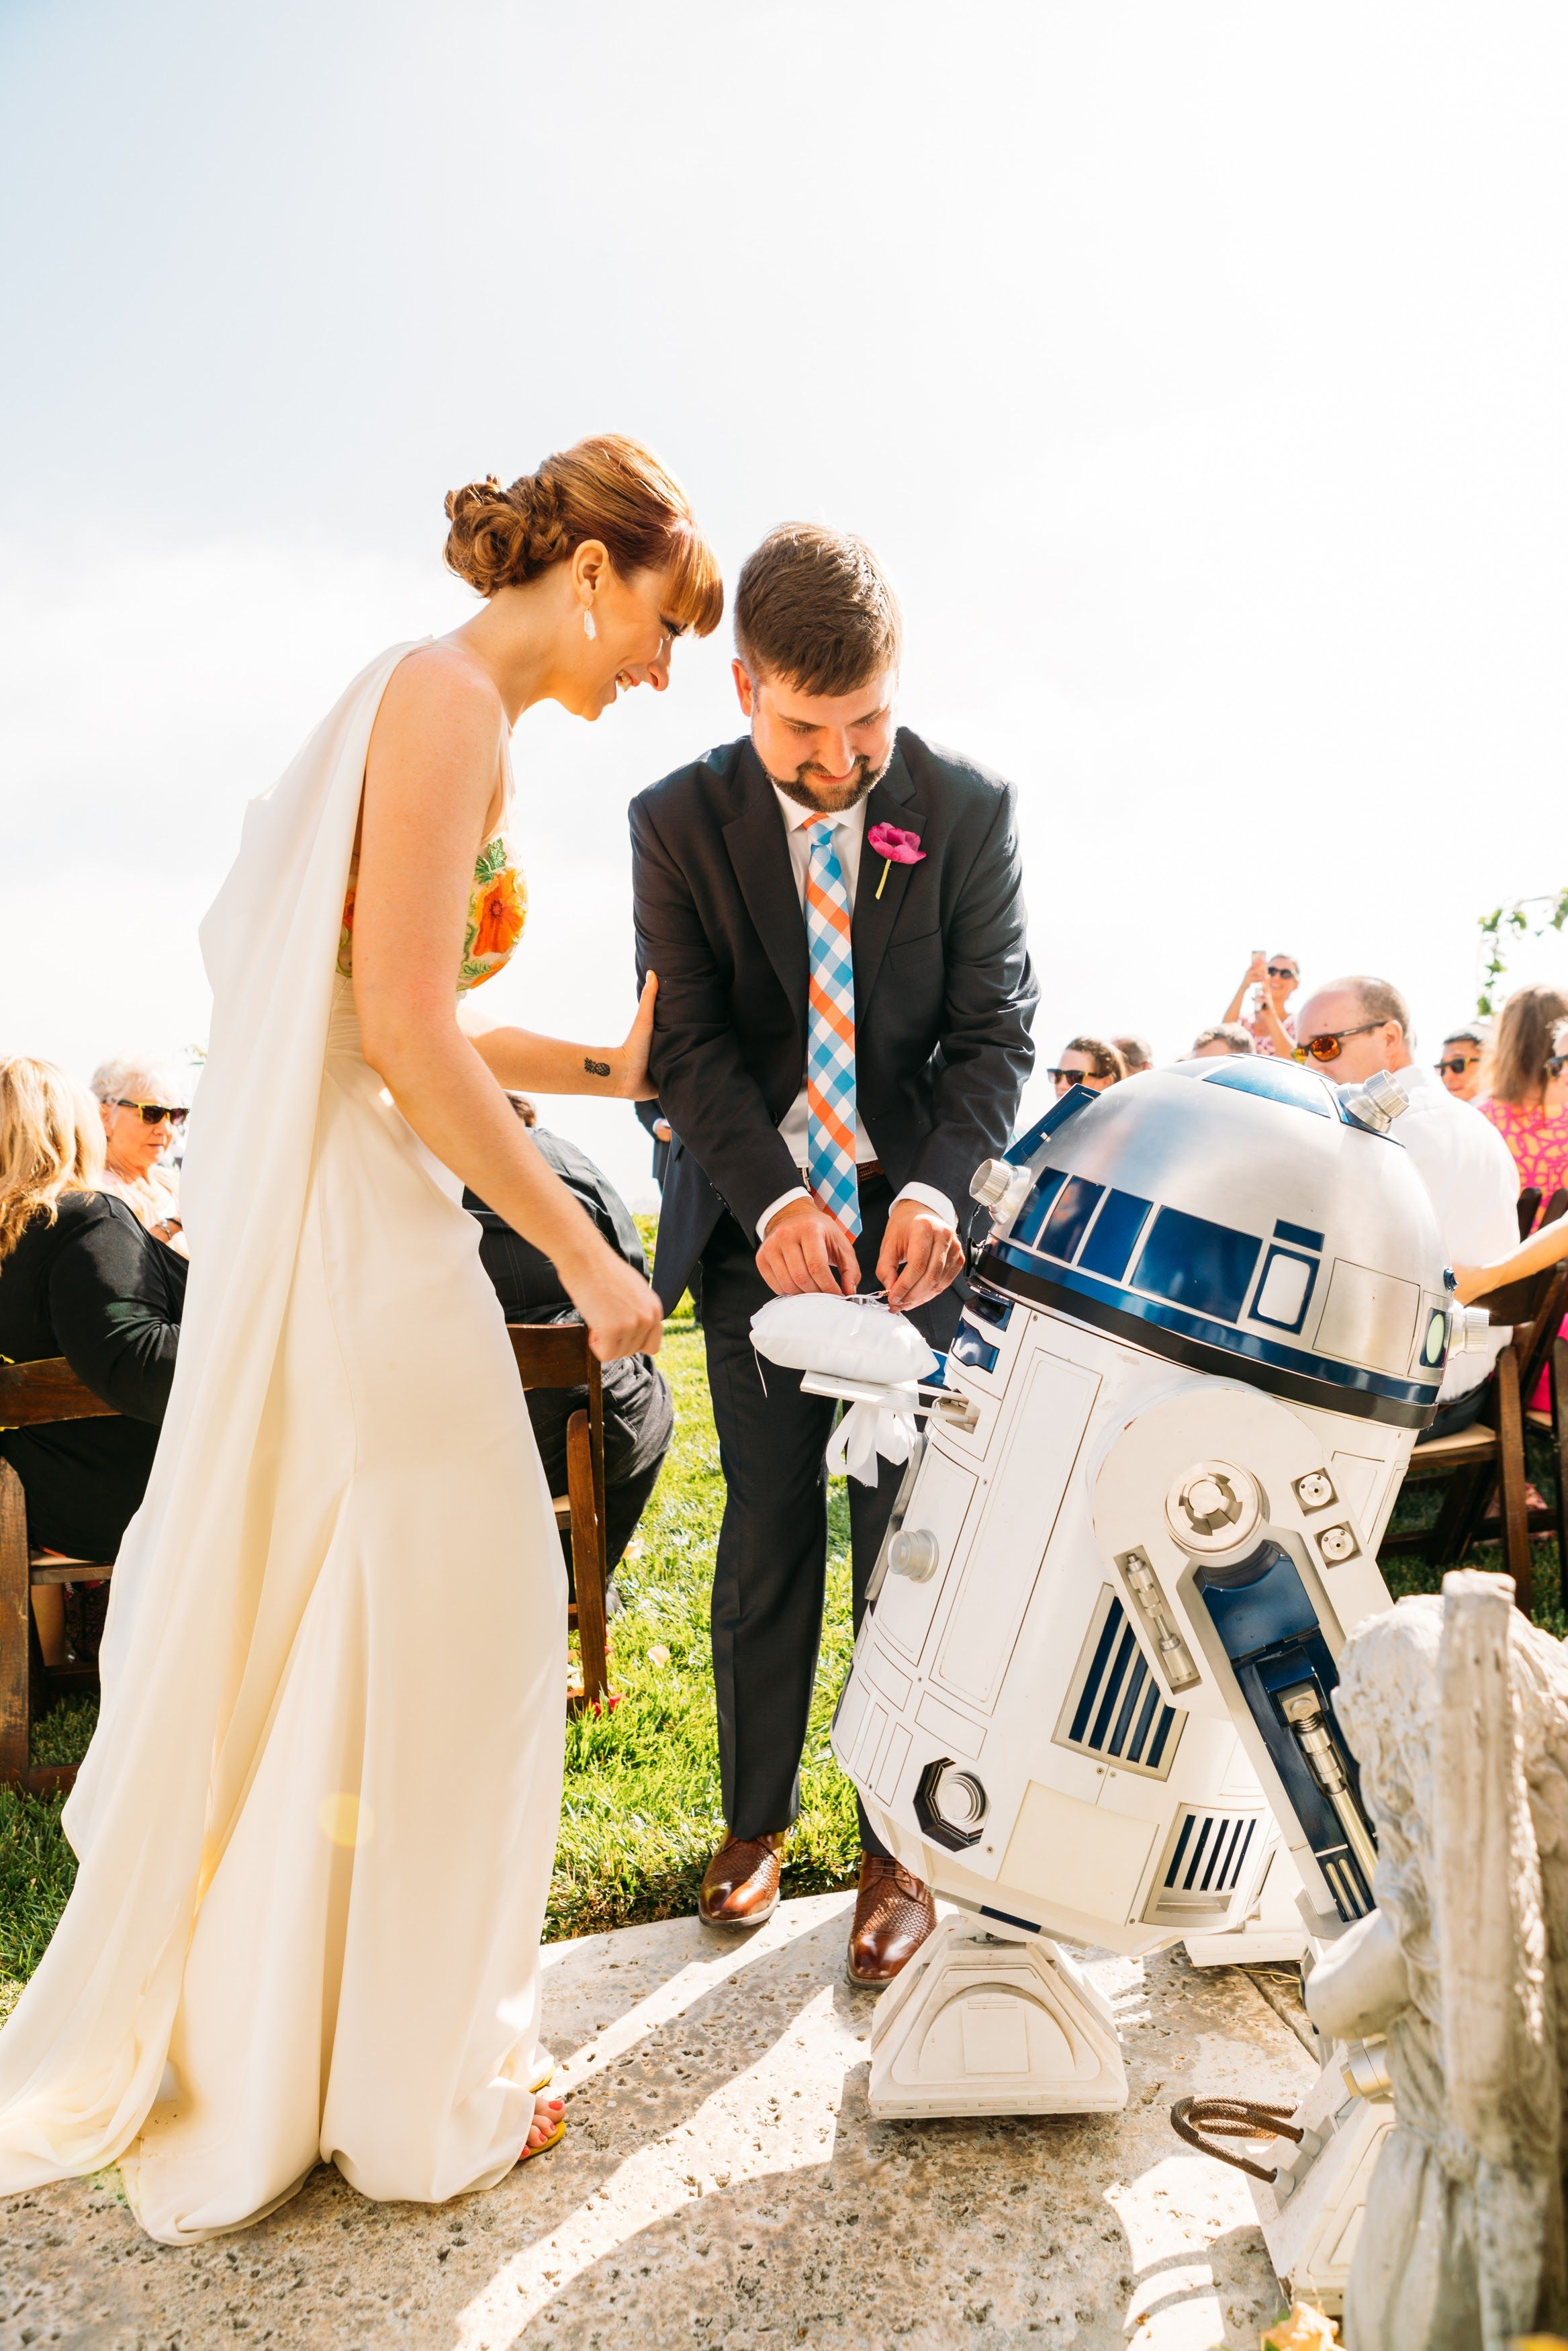 In This Awesome Ca Wedding Krystal Surprised Her Groom With An